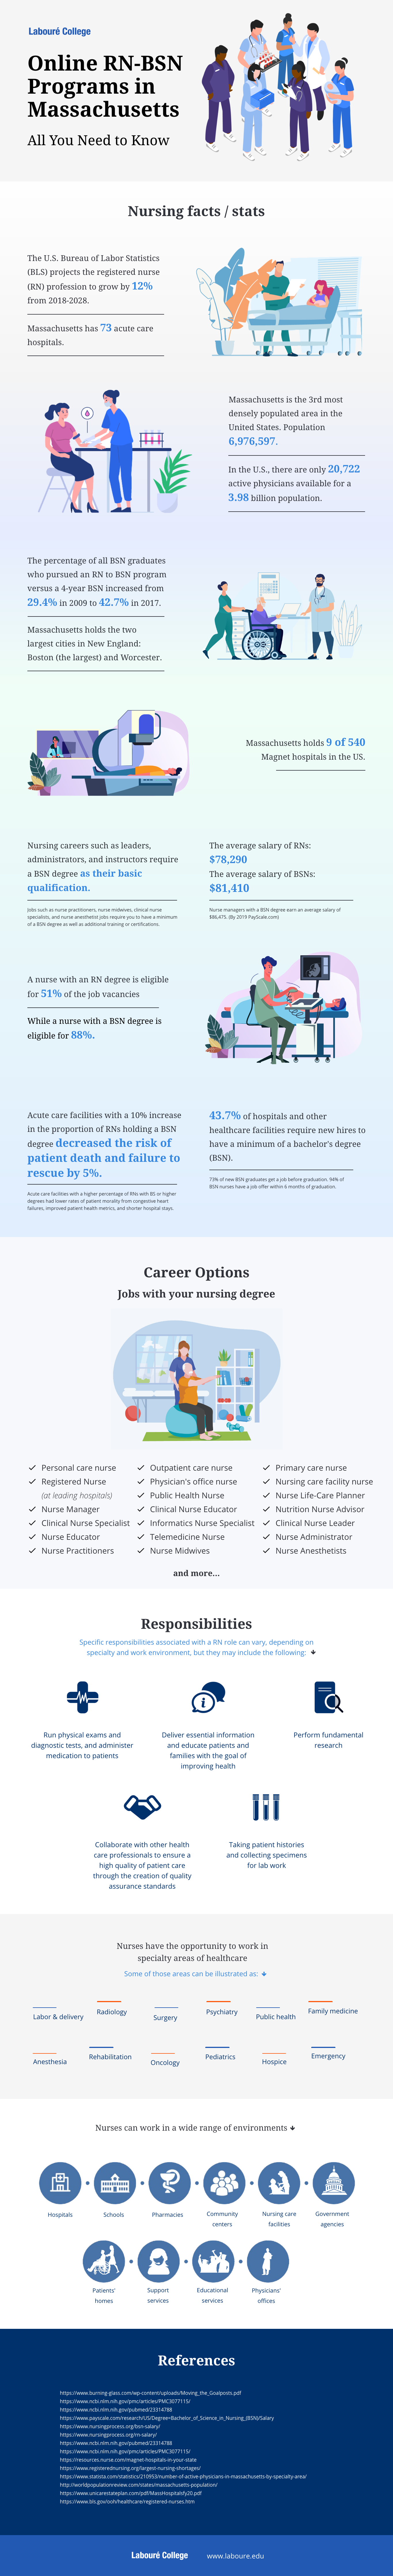 11 Incredible Nursing Statistics You Need to Know in 2021 (Infographic)